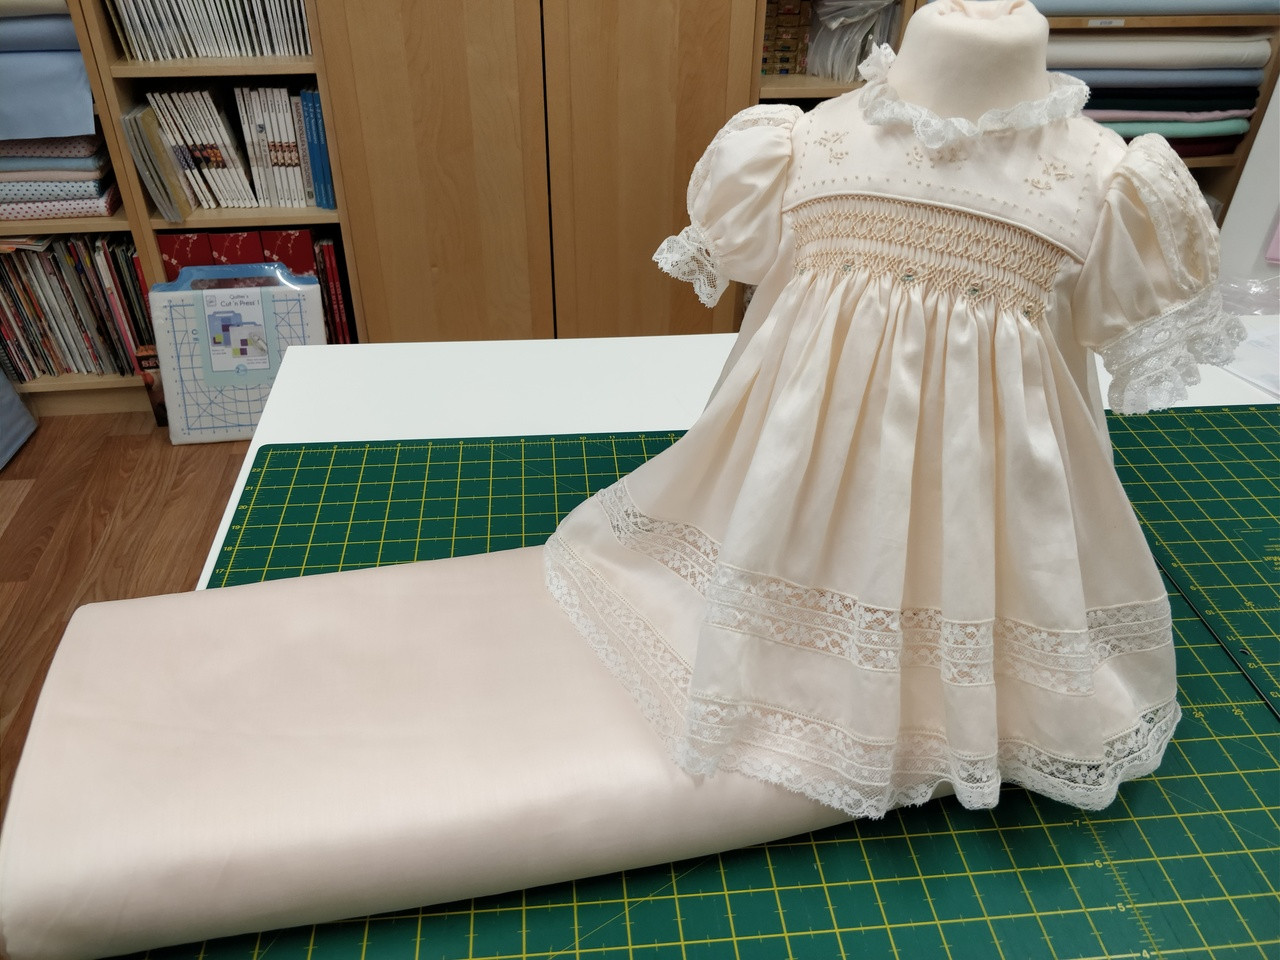 Peach satin batiste made up into Emma by Jeannie Beaumeister